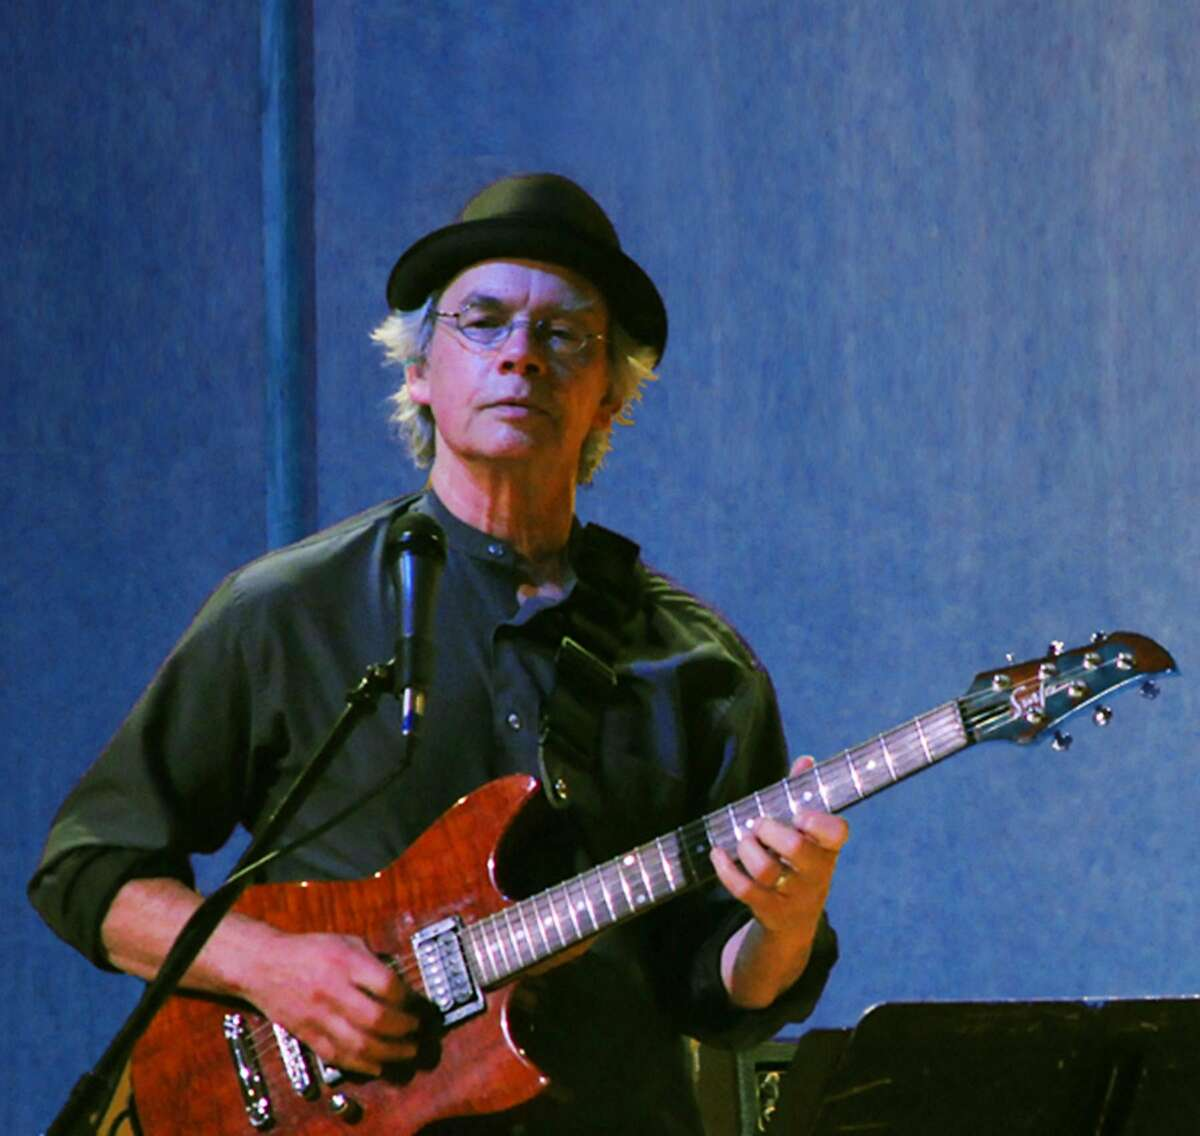 Bill Horvitz, a guitarist, composer, bandleader and catalytic collaborator who spent four decades combining an expansive palette of styles in an ever-evolving roster of ensembles, died of pancreatic cancer at his home in Forestville on Jan. 15, 2017. He was 69.